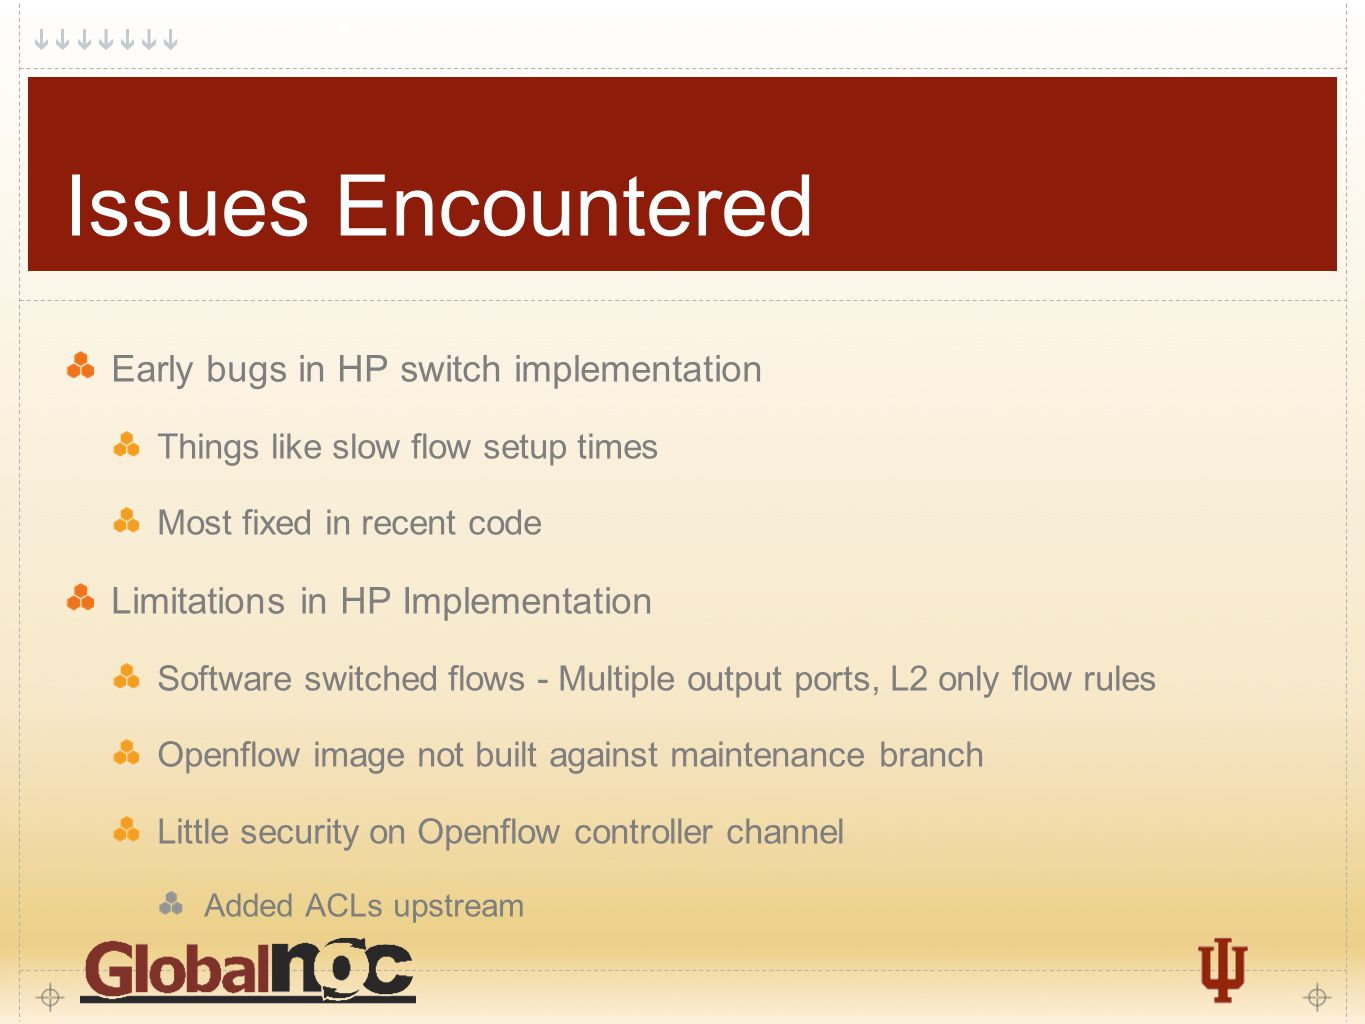 6 Issues Encountered Early bugs in HP switch implementation Things like slow flow setup times Most fixed in recent code Limitations in HP Implementation Software switched flows - Multiple output ports, L2 only flow rules Openflow image not built against maintenance branch Little security on Openflow controller channel Added ACLs upstream